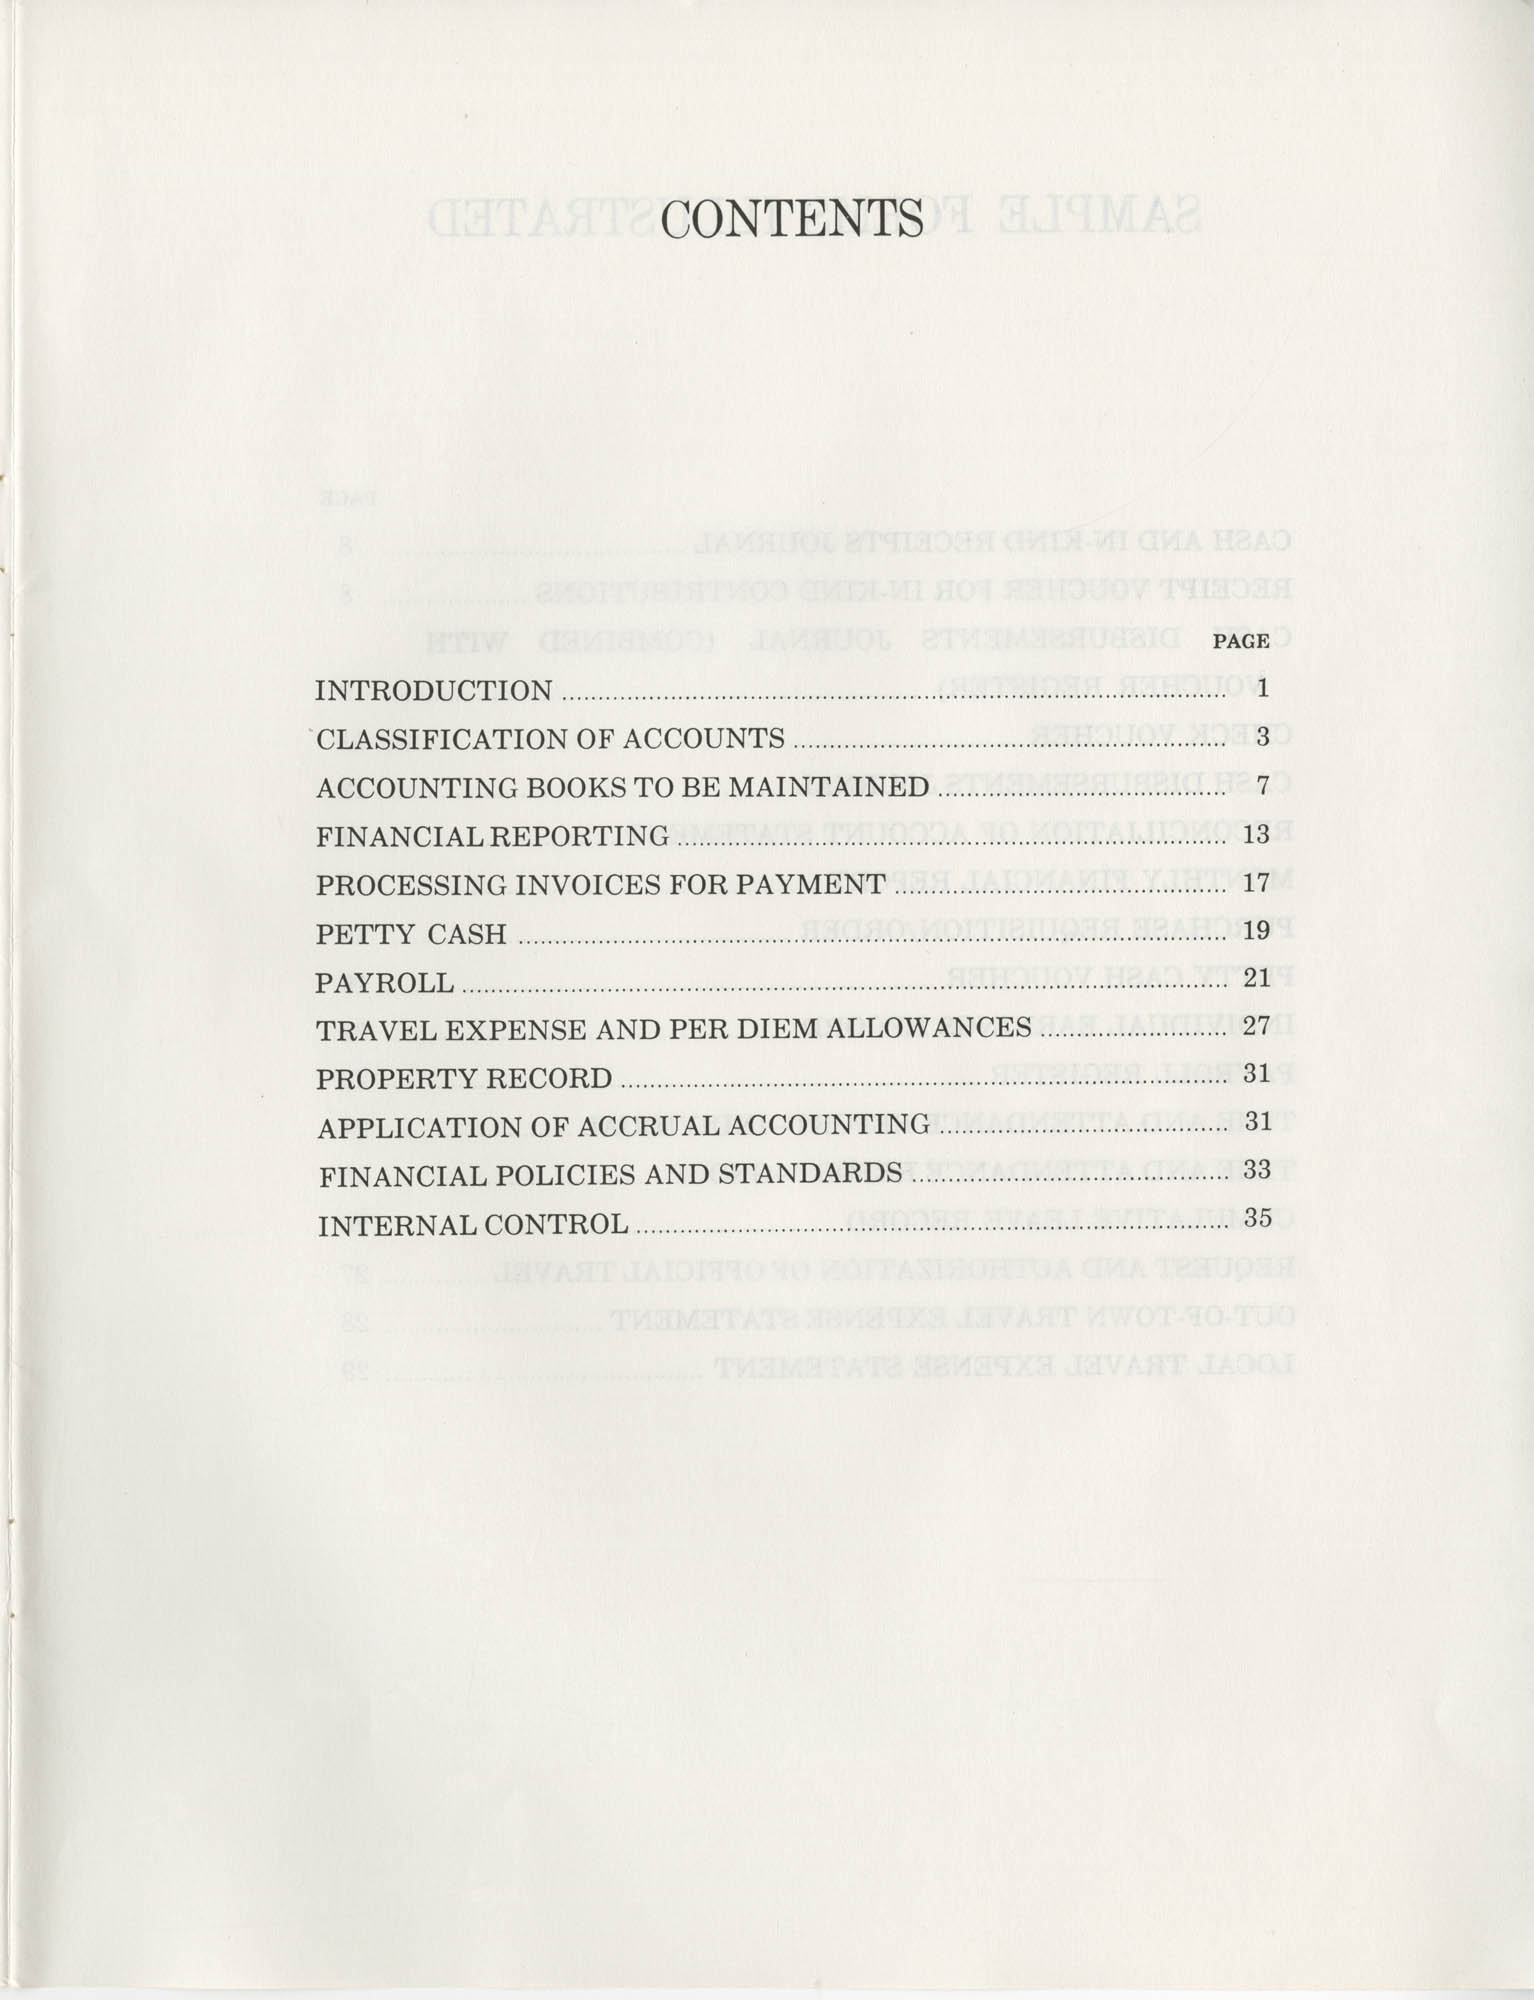 Guide for Grantee Accounting, Contents Page